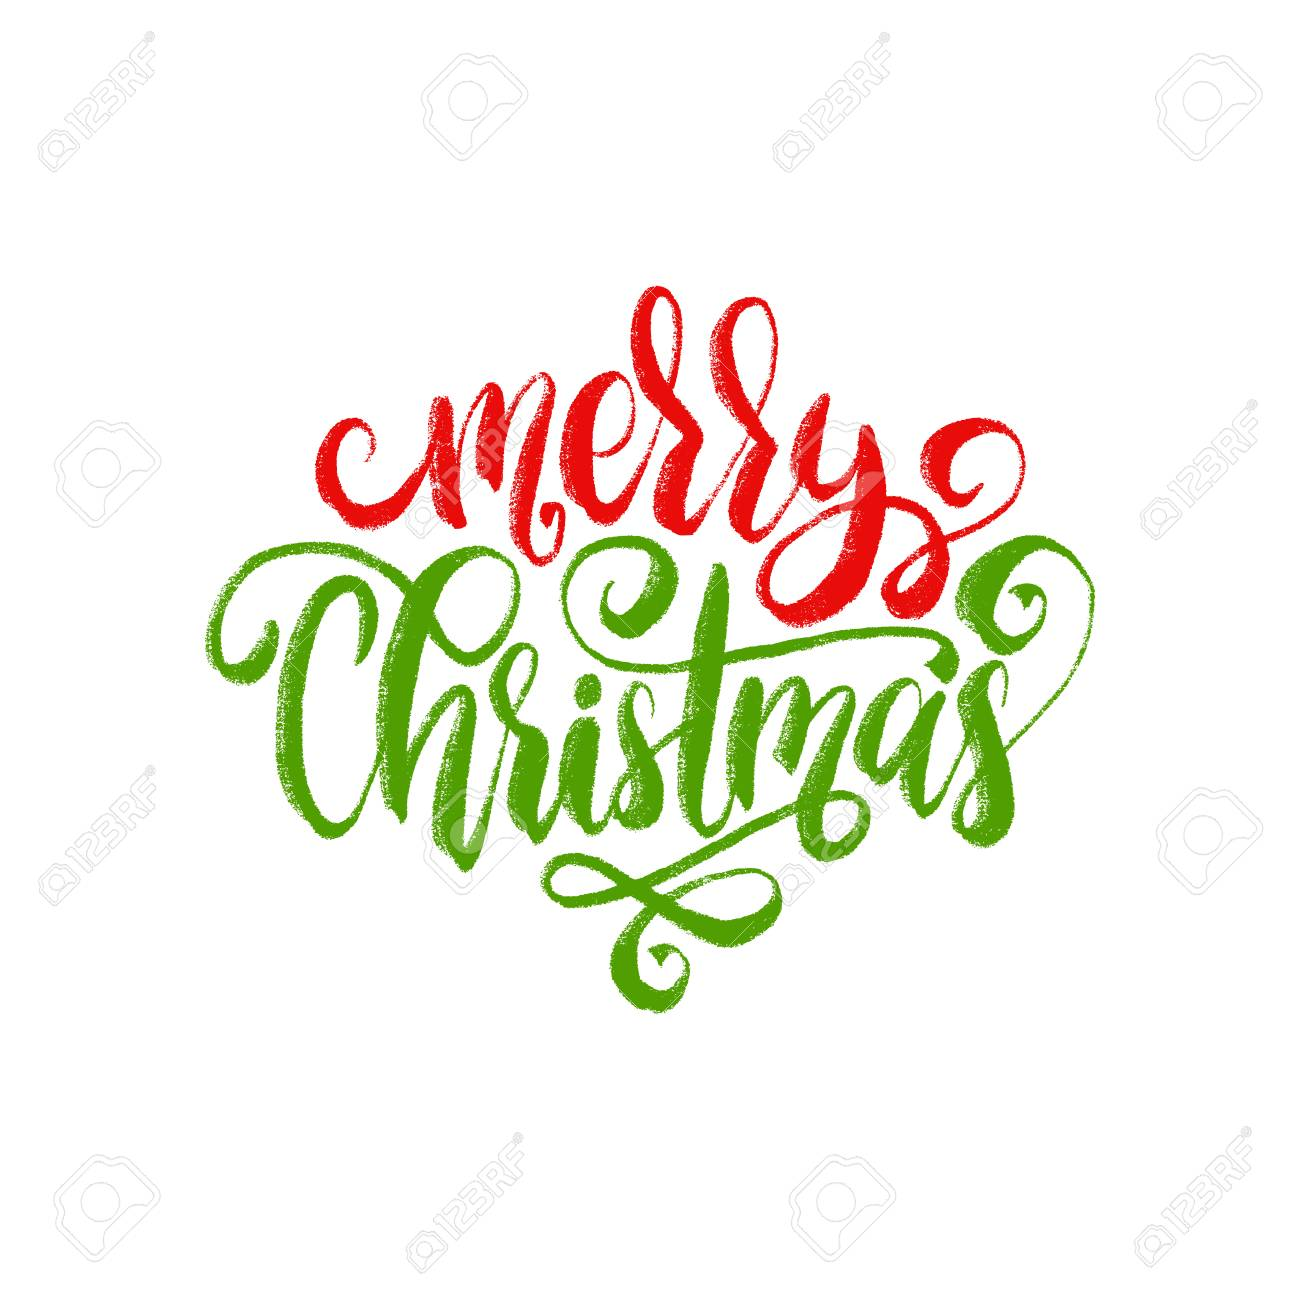 Merry Christmas Lettering.Merry Christmas Lettering Vector Calligraphic Illustration